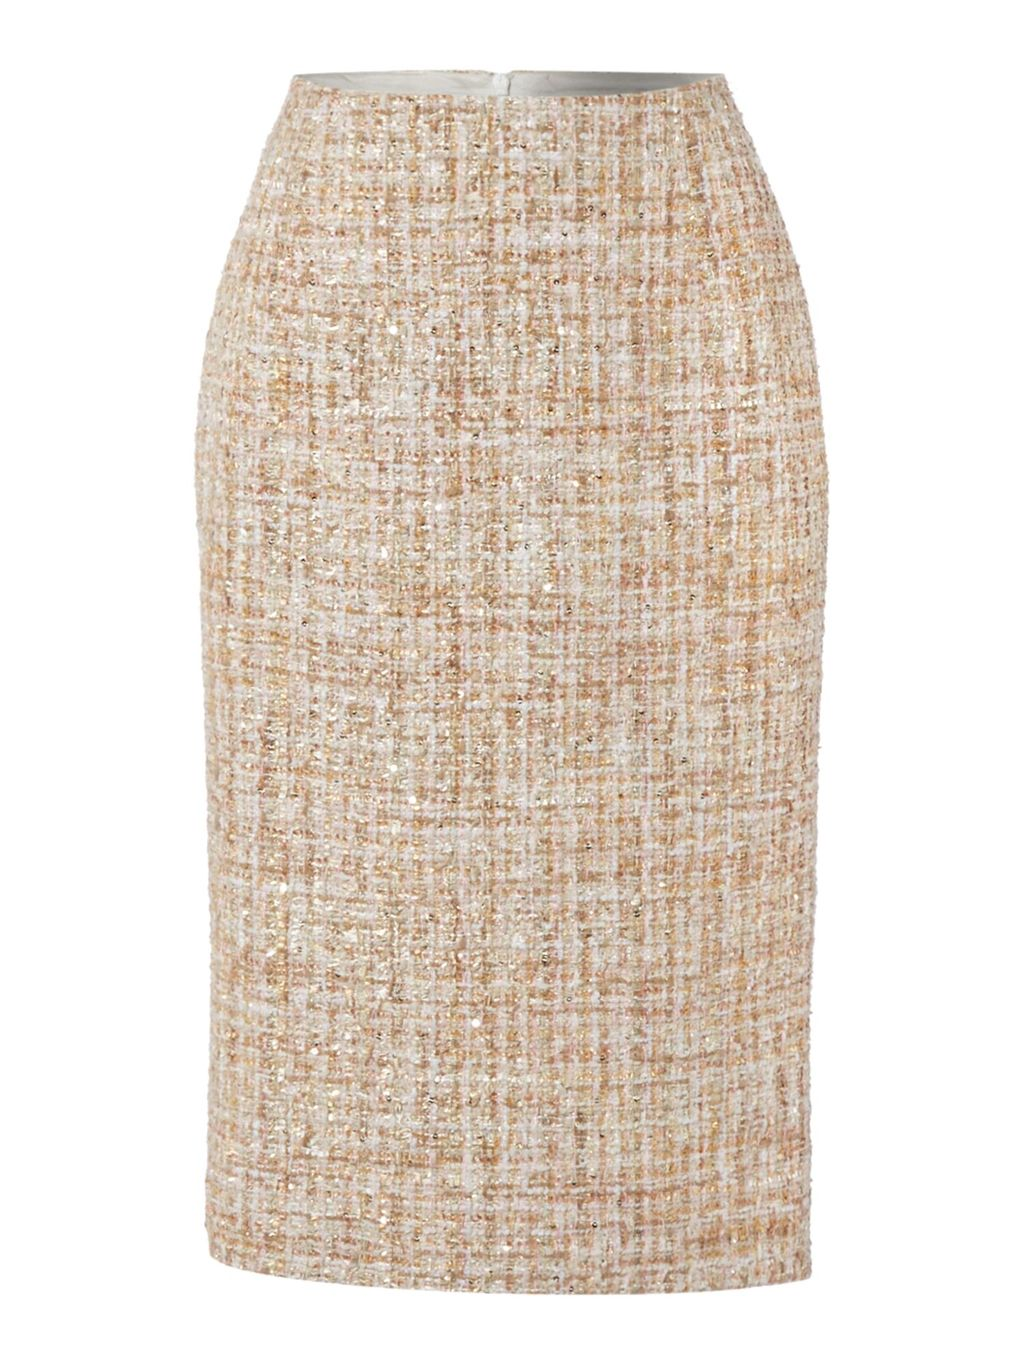 Edie Luxe Tweed Mix Skirt, Pink - style: pencil; fit: tailored/fitted; waist: high rise; pattern: herringbone/tweed; predominant colour: nude; occasions: work, creative work; length: on the knee; fibres: polyester/polyamide - 100%; pattern type: fabric; texture group: woven light midweight; season: s/s 2016; wardrobe: highlight